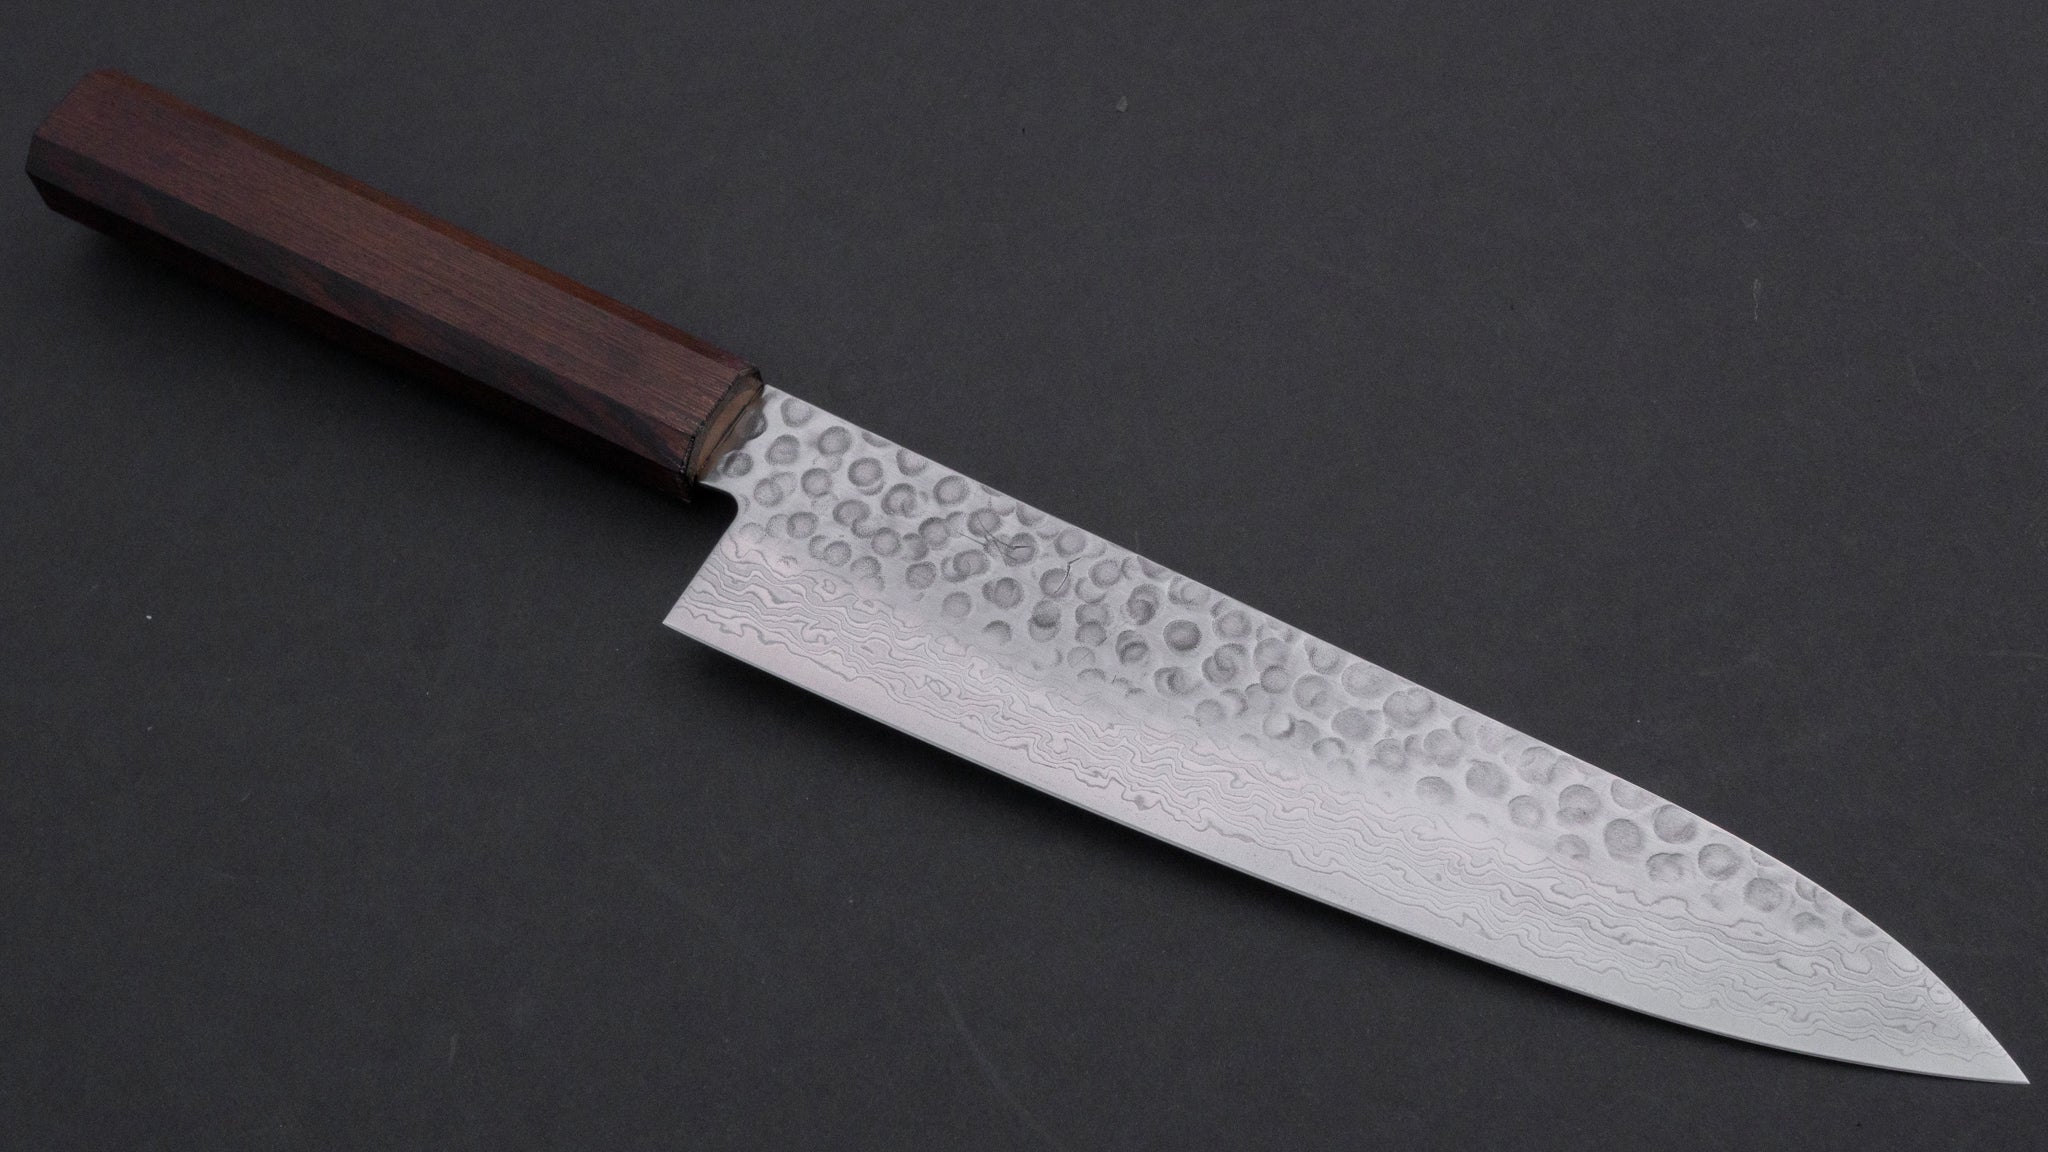 Hitohira HG Tsuchime Damascus Gyuto 210mm Wenge Handle